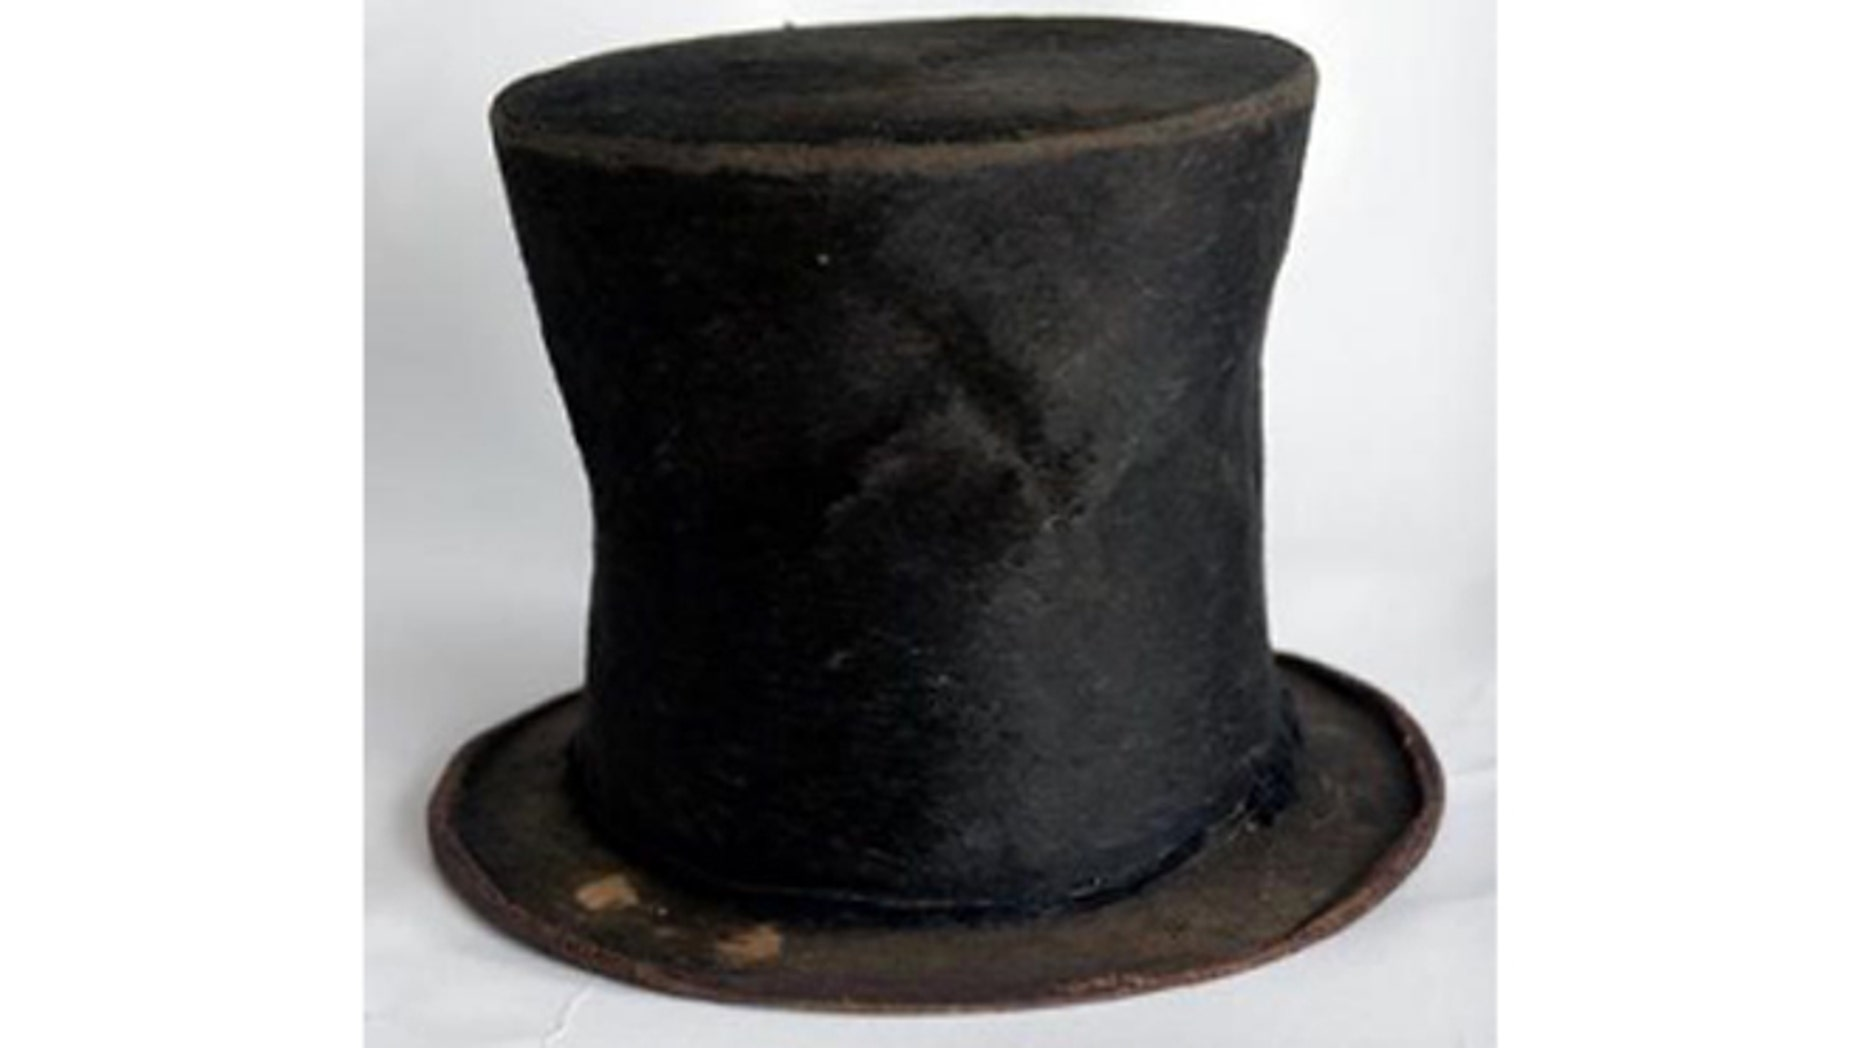 Abraham Lincoln's stovepipe hat is part the Taper Collection, which the Abraham Lincoln Presidential Library and Museum has acquired.